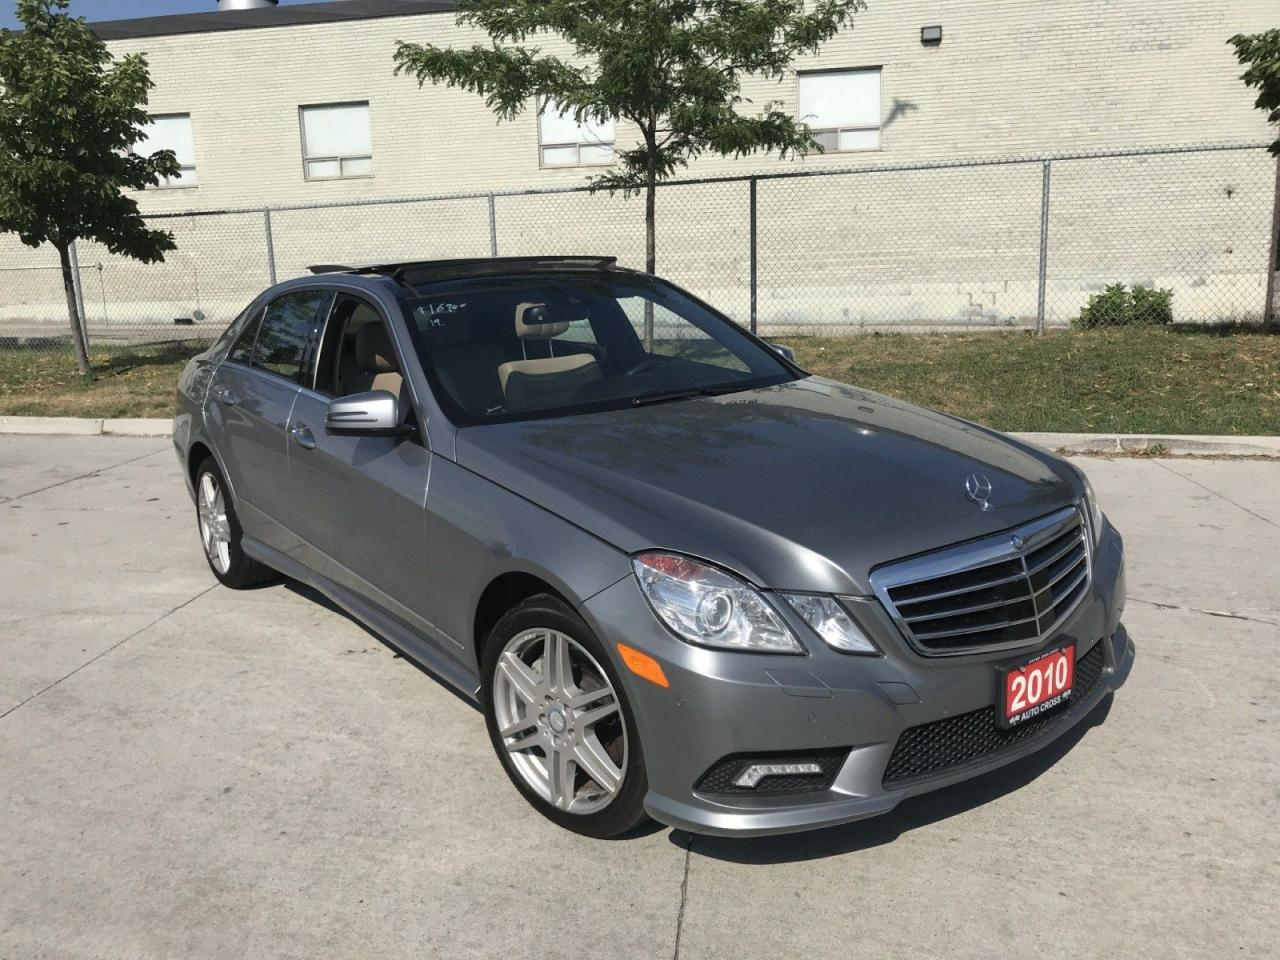 used 2010 mercedes benz e550 e550 4 matic navi 3 y warranty availab for sale in toronto. Black Bedroom Furniture Sets. Home Design Ideas